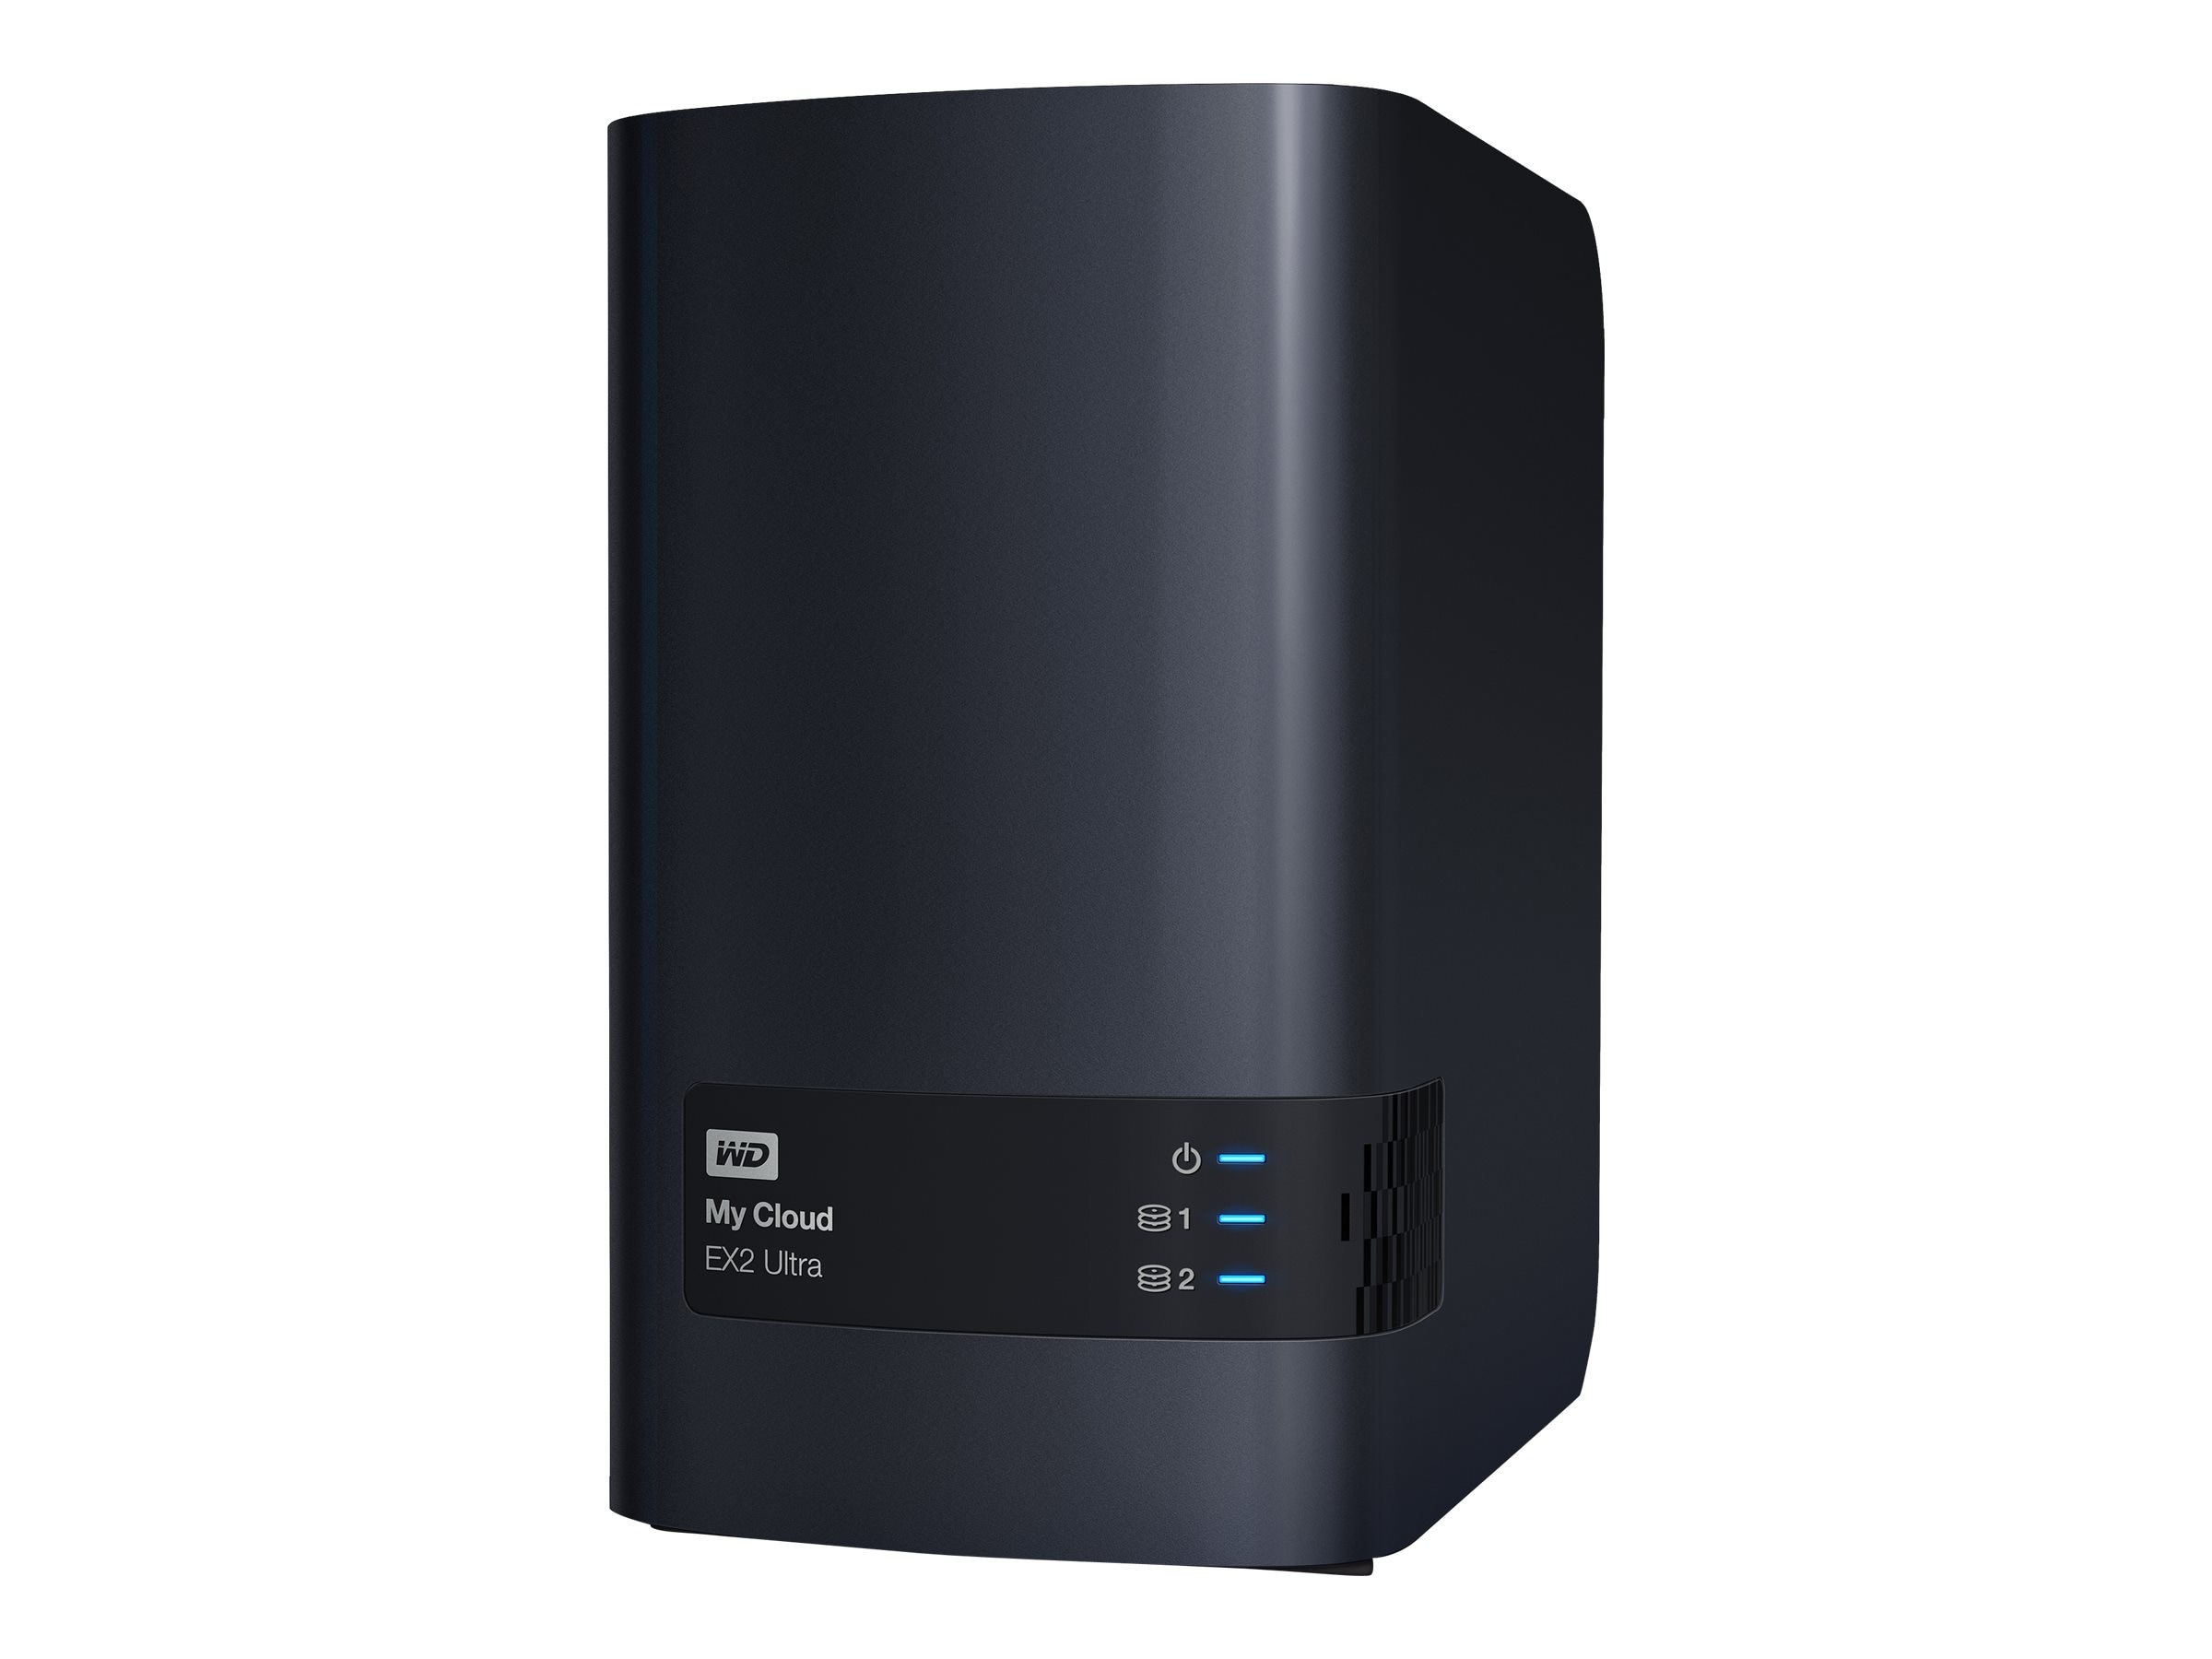 WD 12TB WD My Cloud EX2 Ultra Private Cloud NAS Storage, WDBVBZ0120JCH-NESN, 31791773, Network Attached Storage